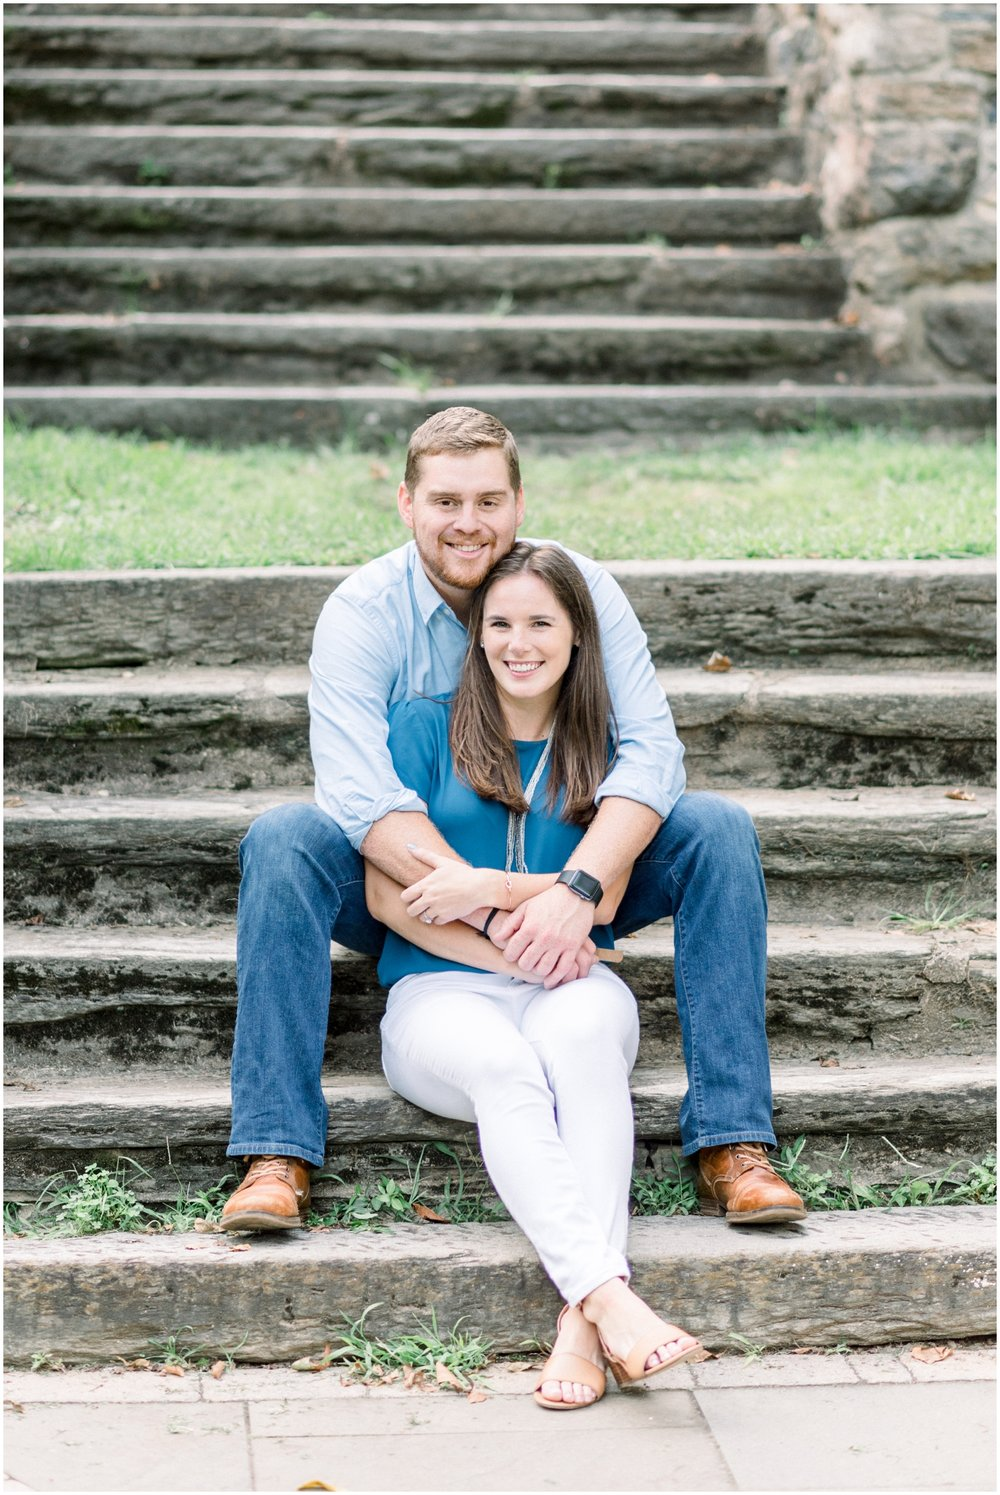 Summer Engagement Session at Hunting Hill Mansion - Krista Brackin Photography_0029.jpg